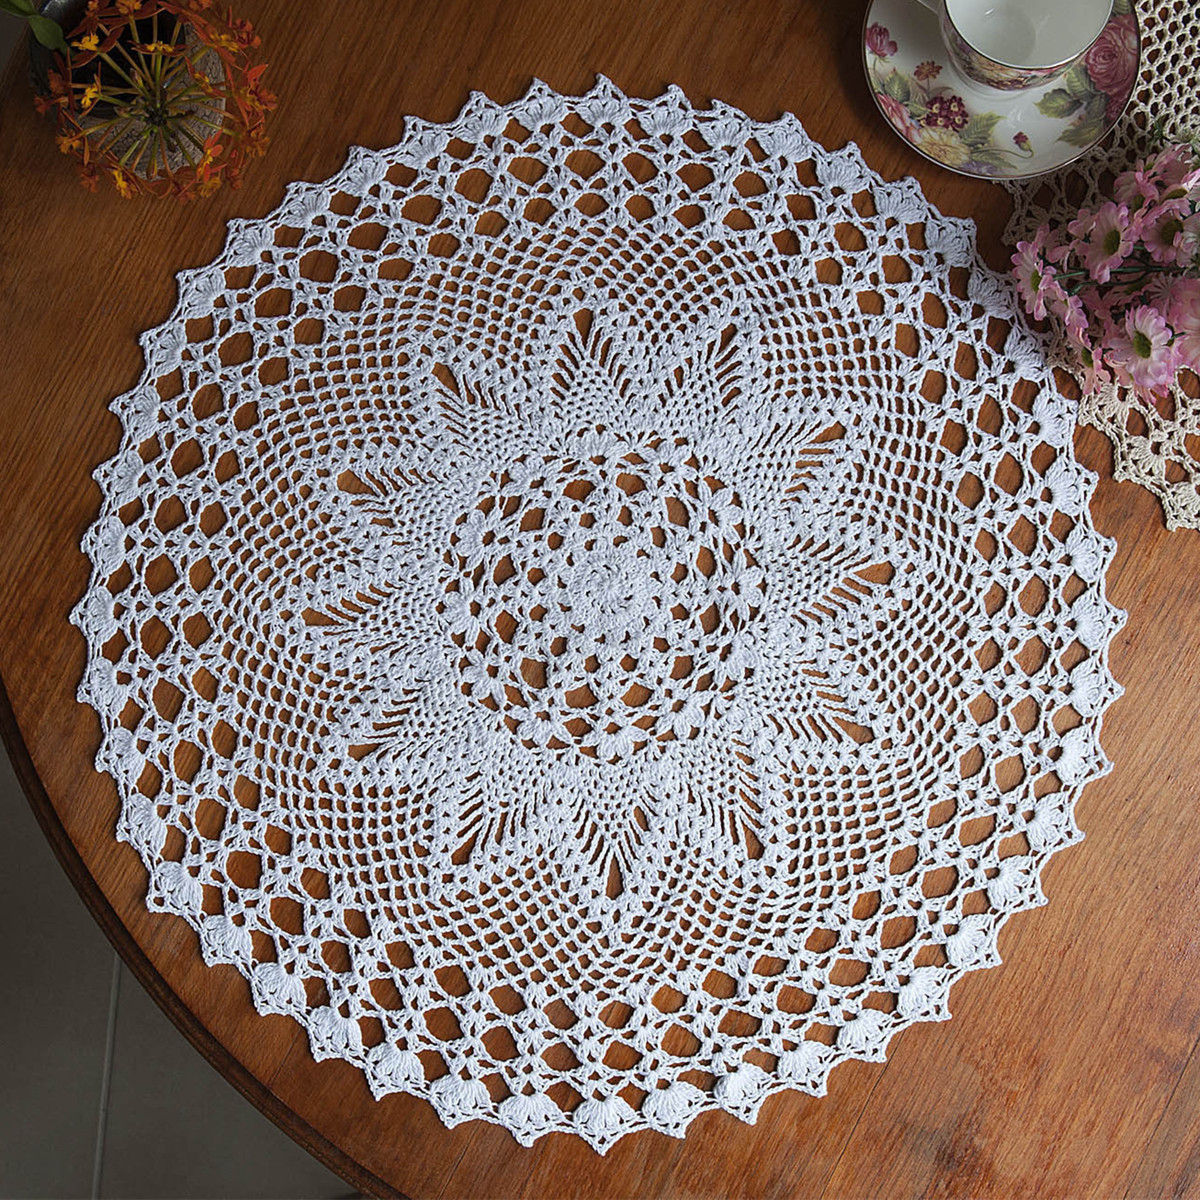 Doily Tablecloth Lovely 23 Round Hand Crochet Lace Doily Placemat Doilies Of Charming 49 Pictures Doily Tablecloth